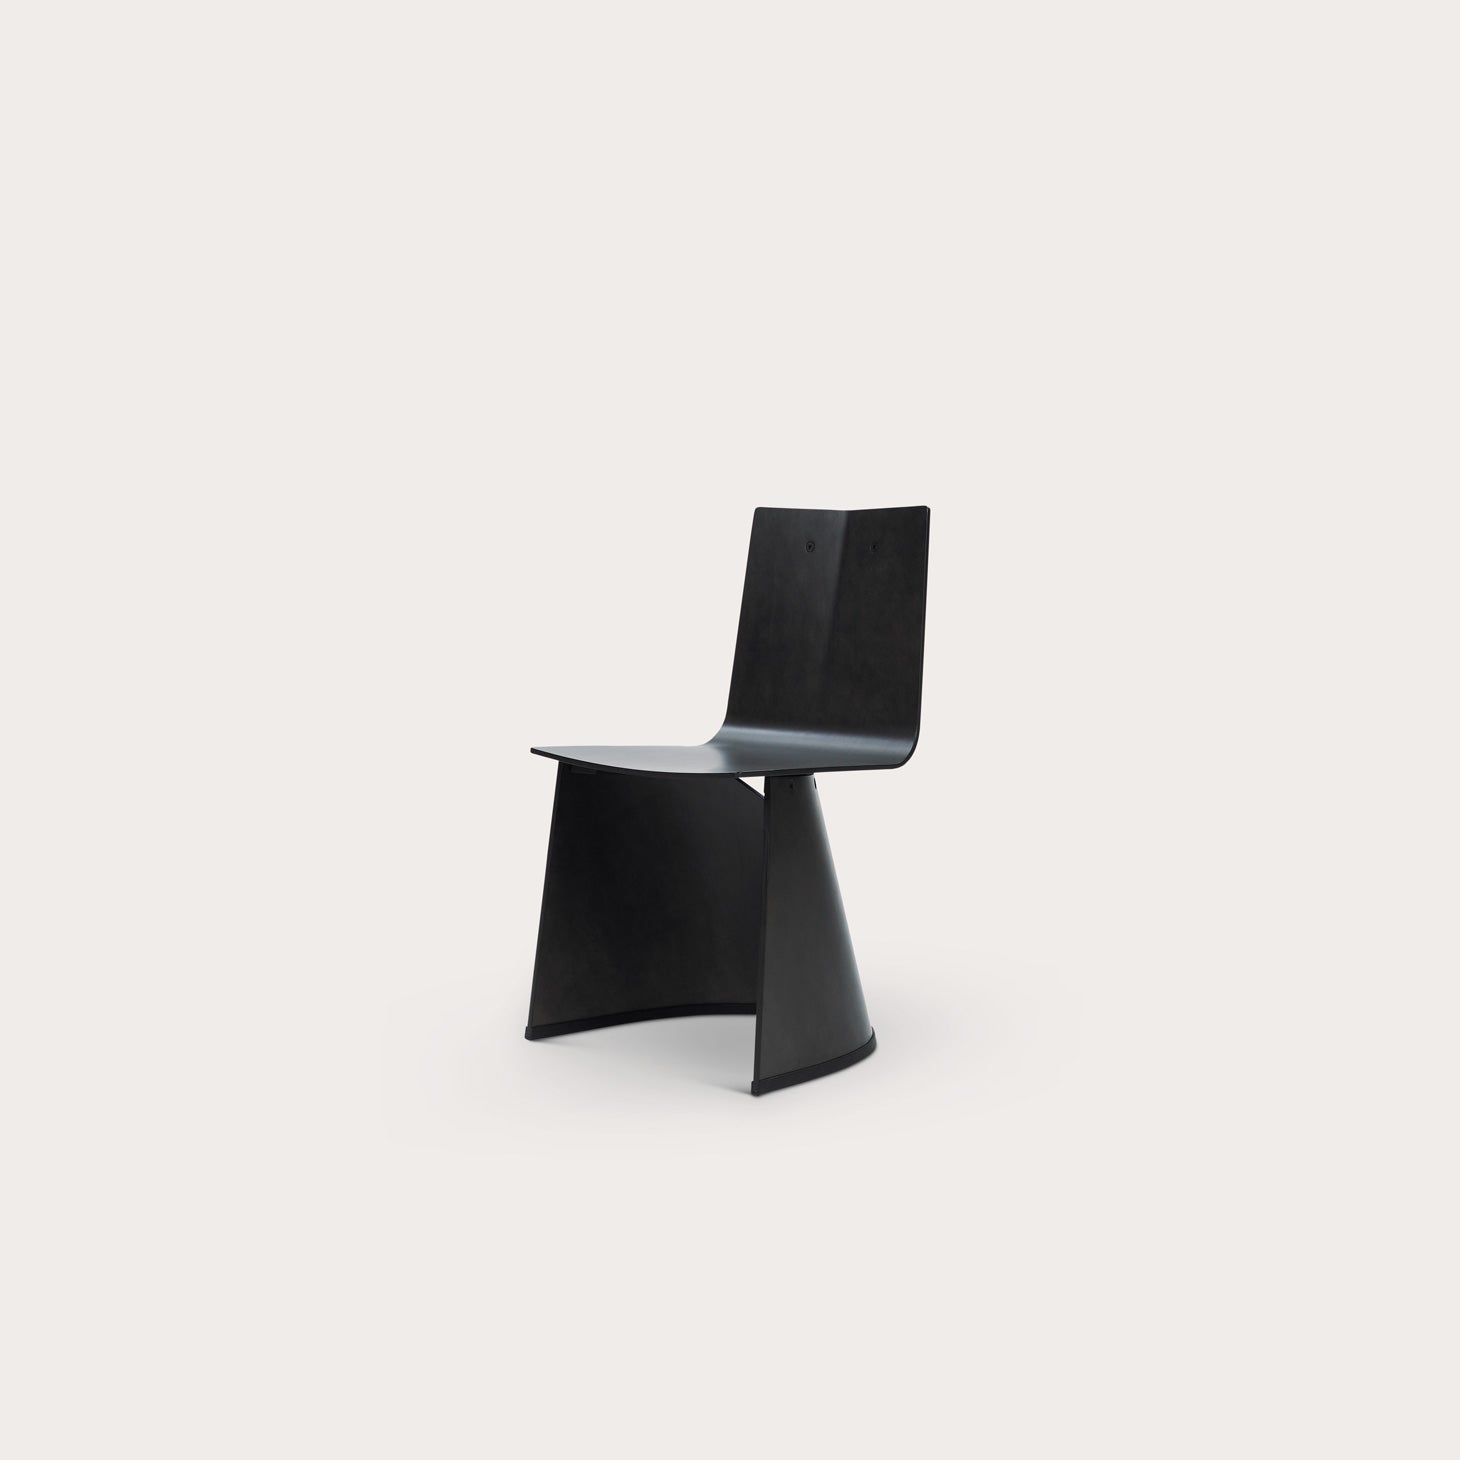 Venus Dining Chair Seating Konstantin Grcic Designer Furniture Sku: 001-120-10760